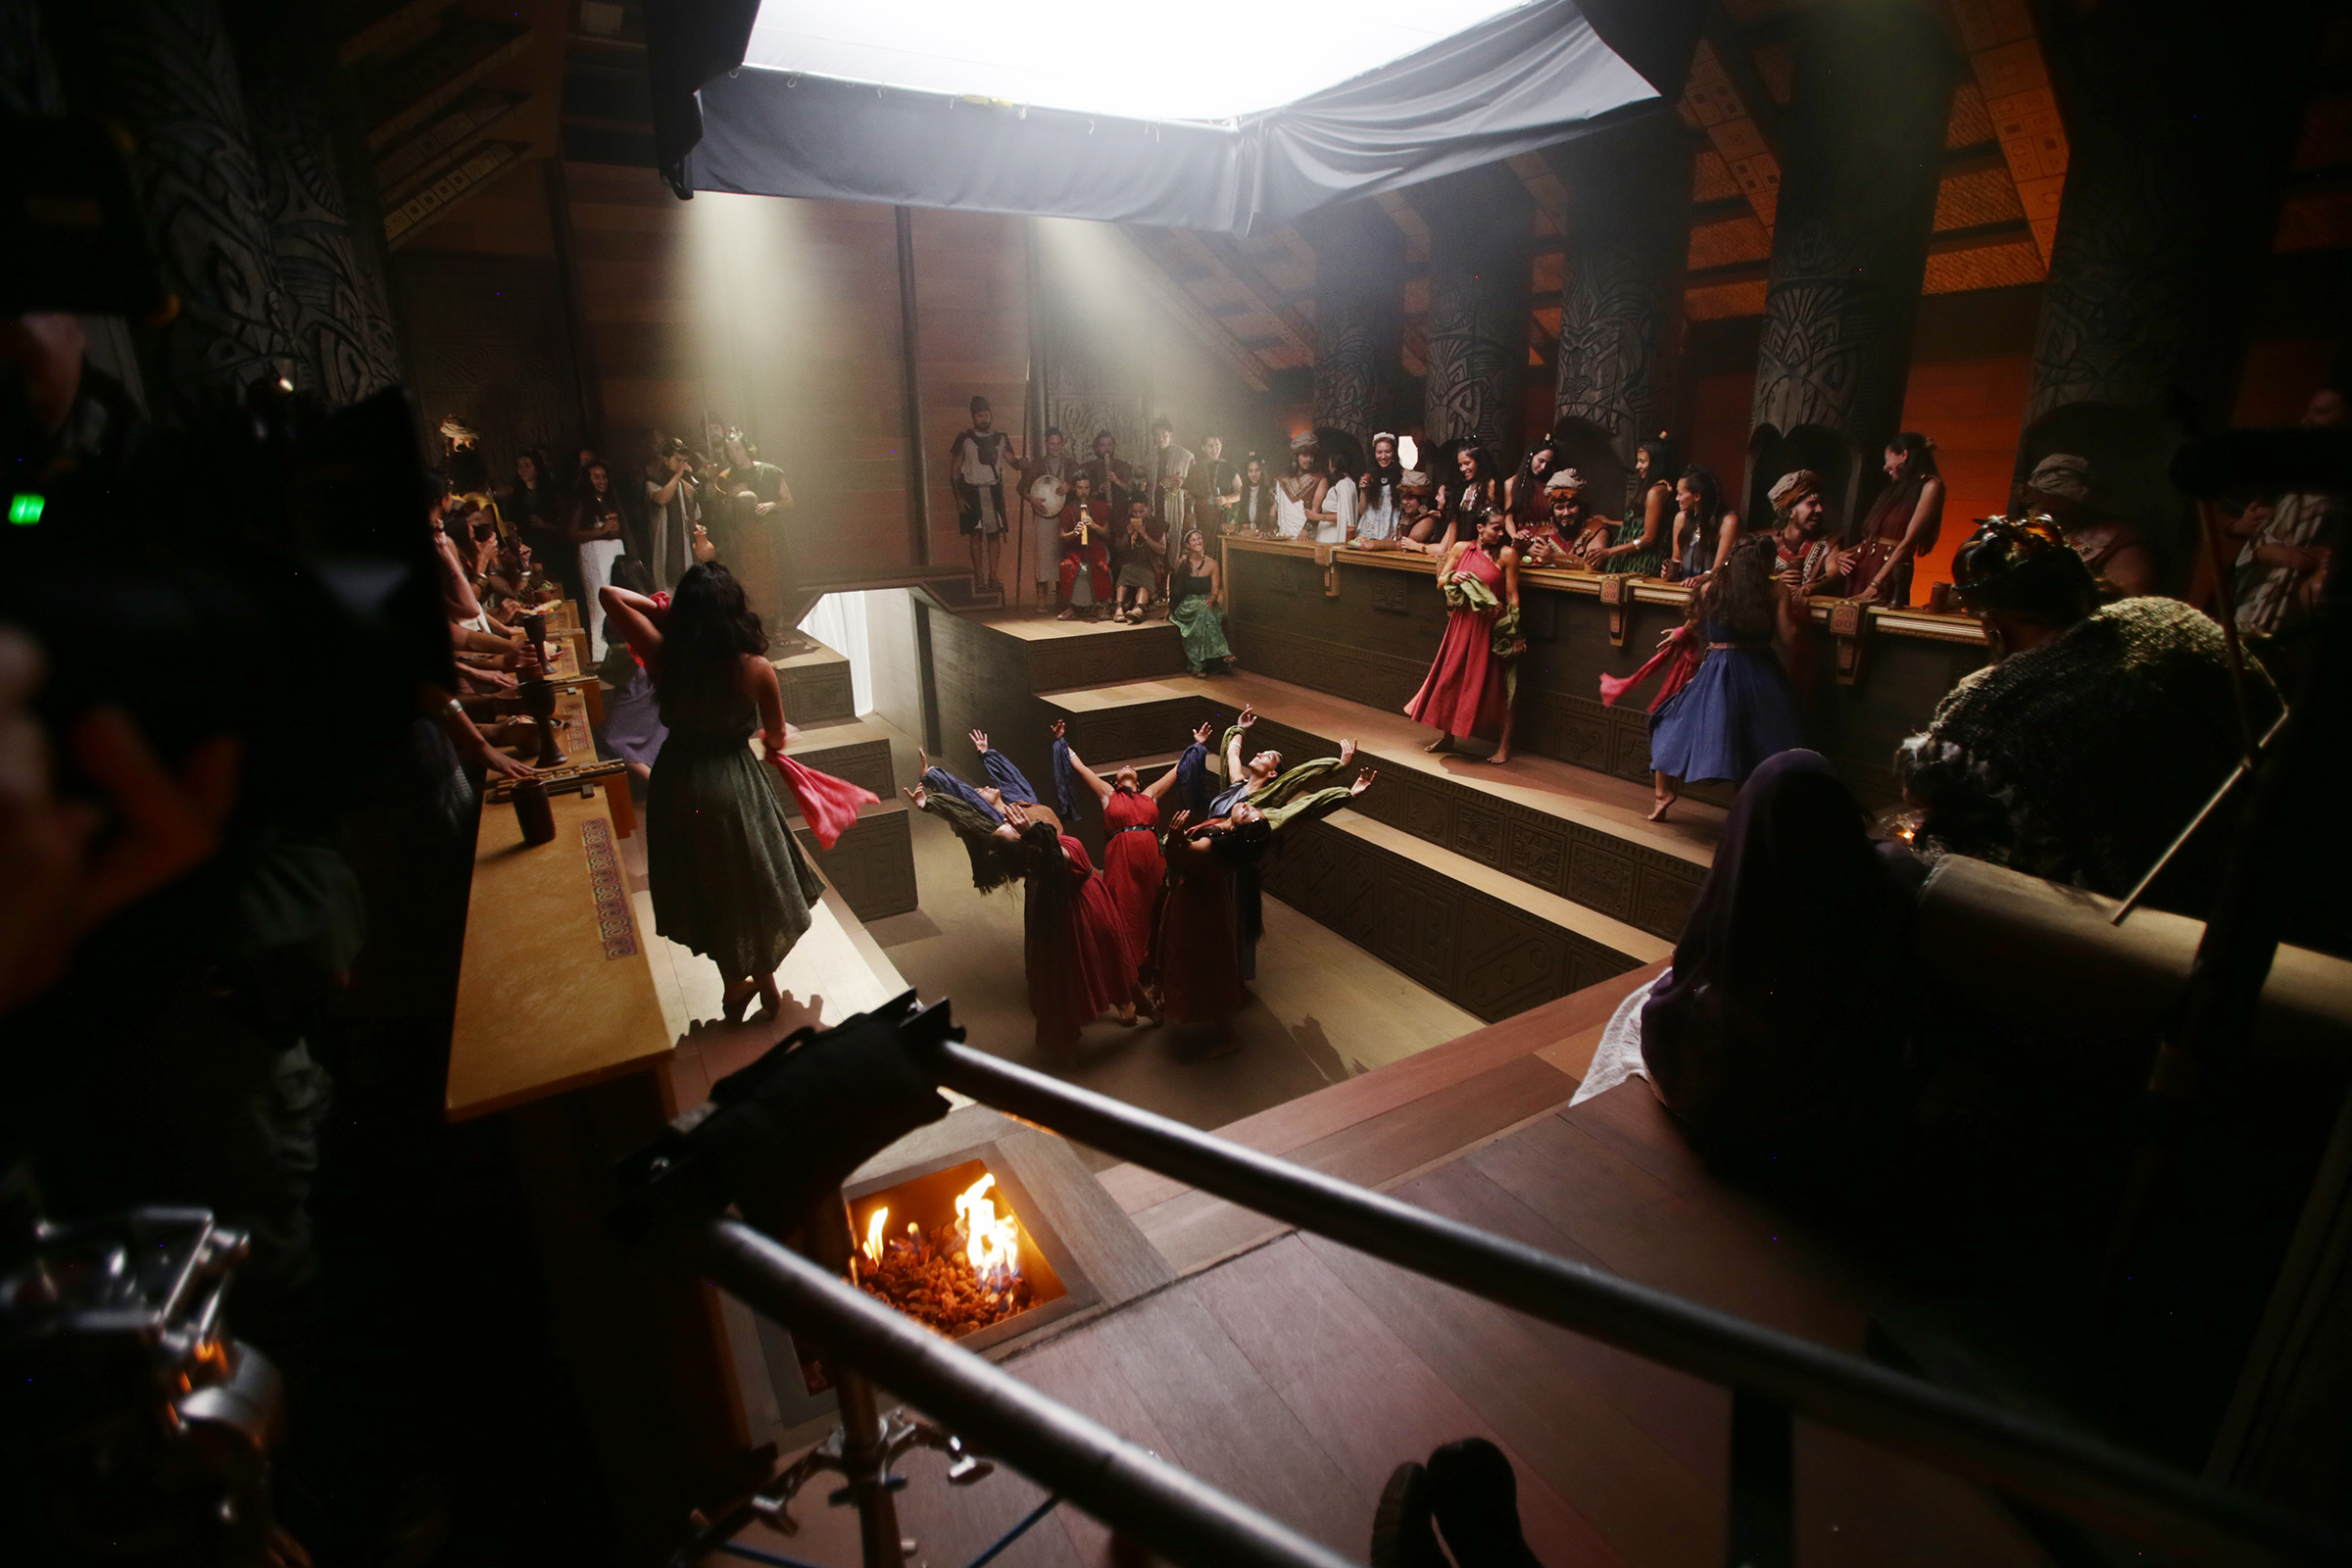 King Noah's court is portrayed for filming as work on production of the Book of Mormon videos series continues in Provo, Utah, at the Motion Picture Studio on Tuesday, Sept. 3, 2019.